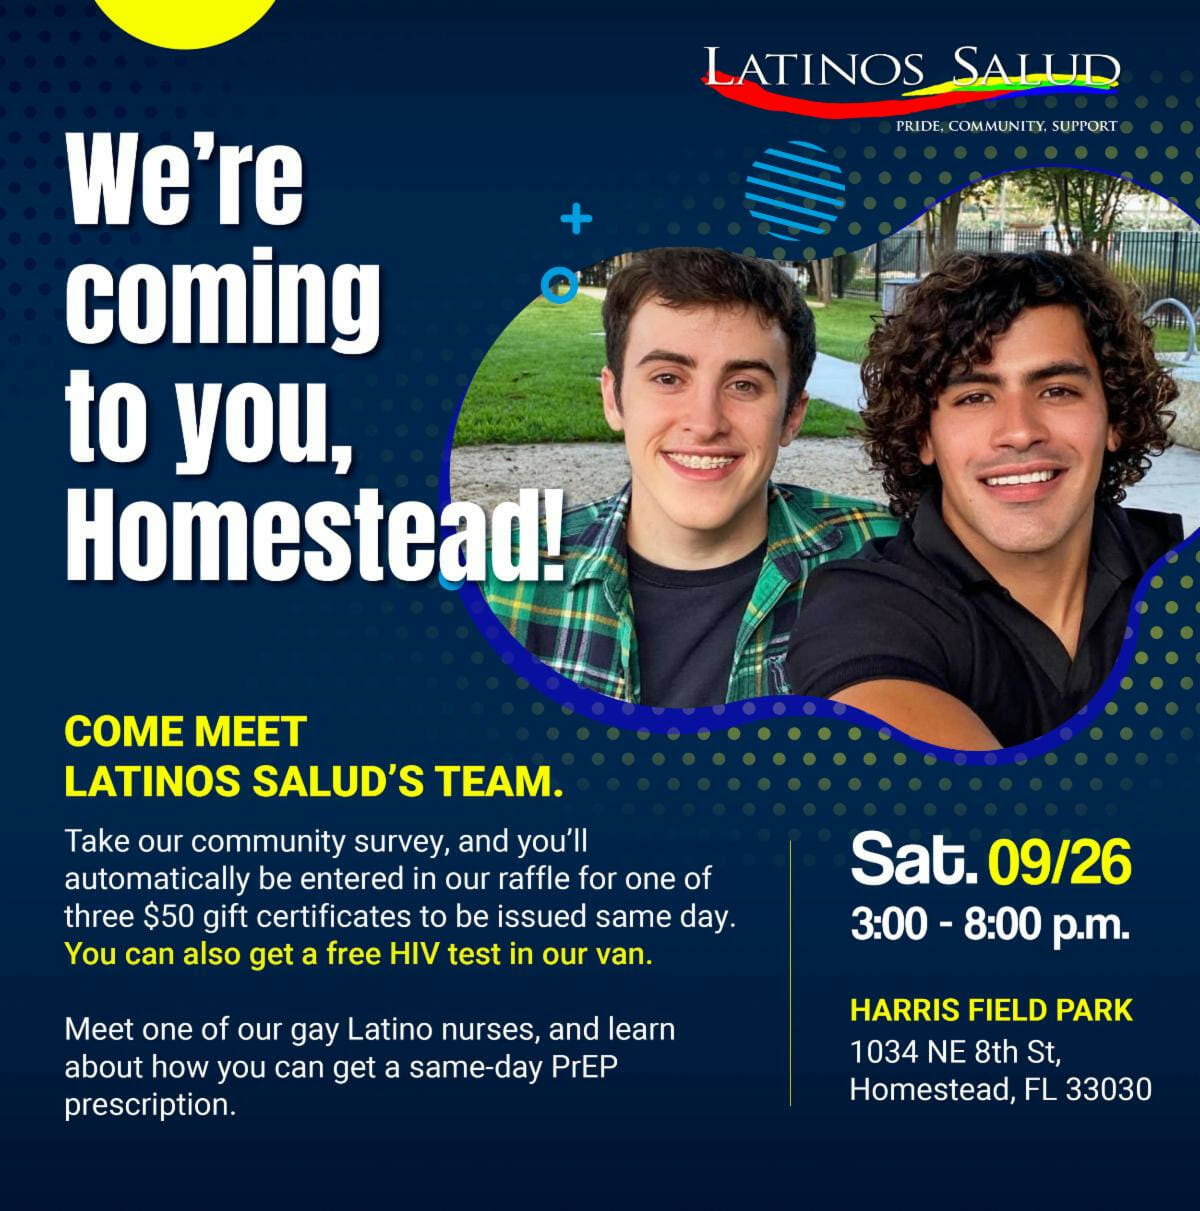 Latinos Salud – Comes to Homestead!